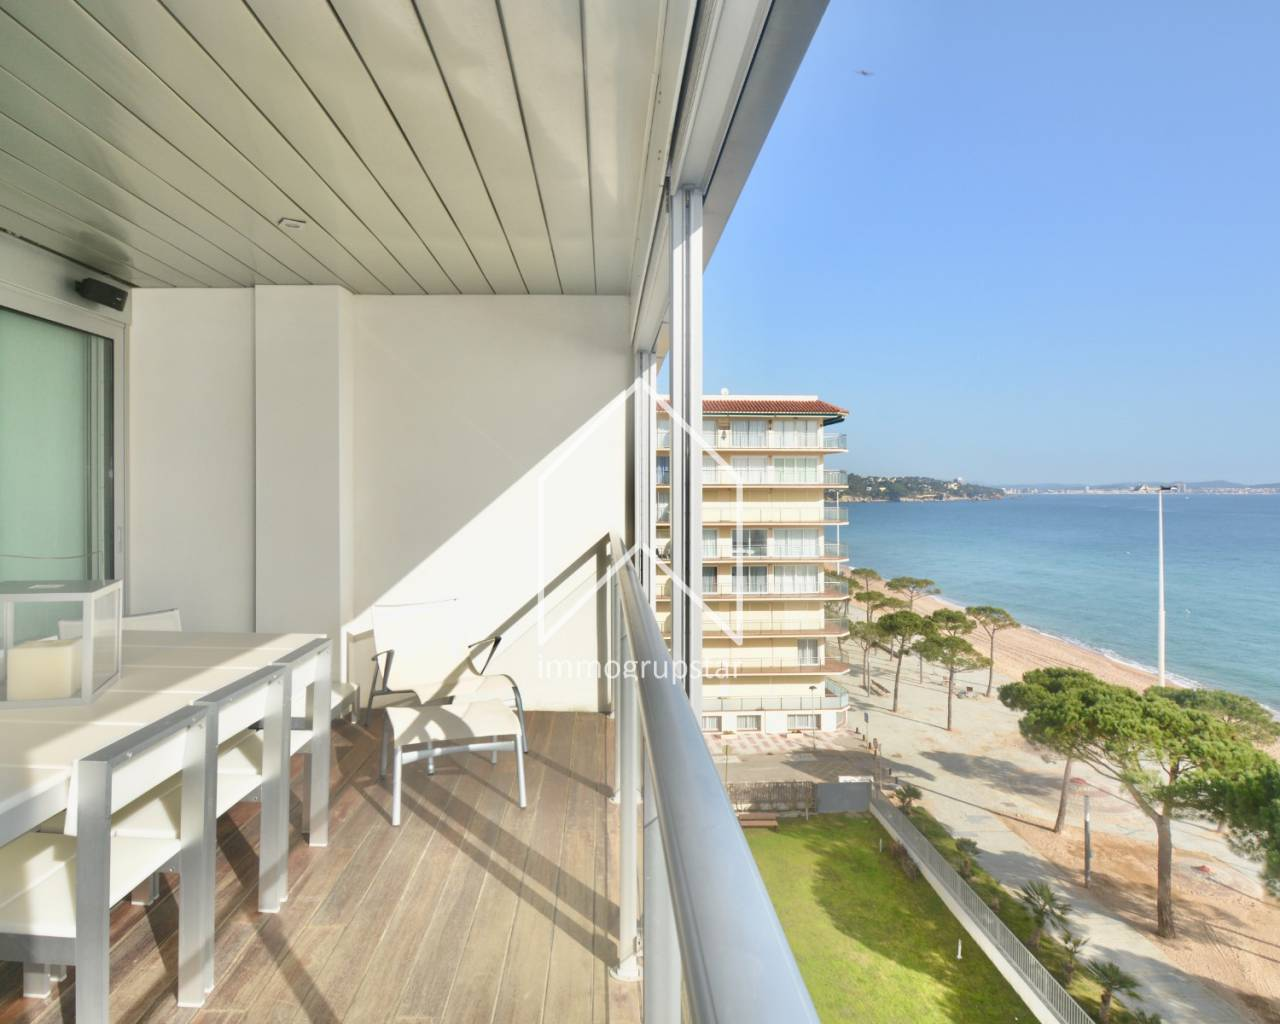 Appartement - Resale - Platja D'aro - Paseo marítimo